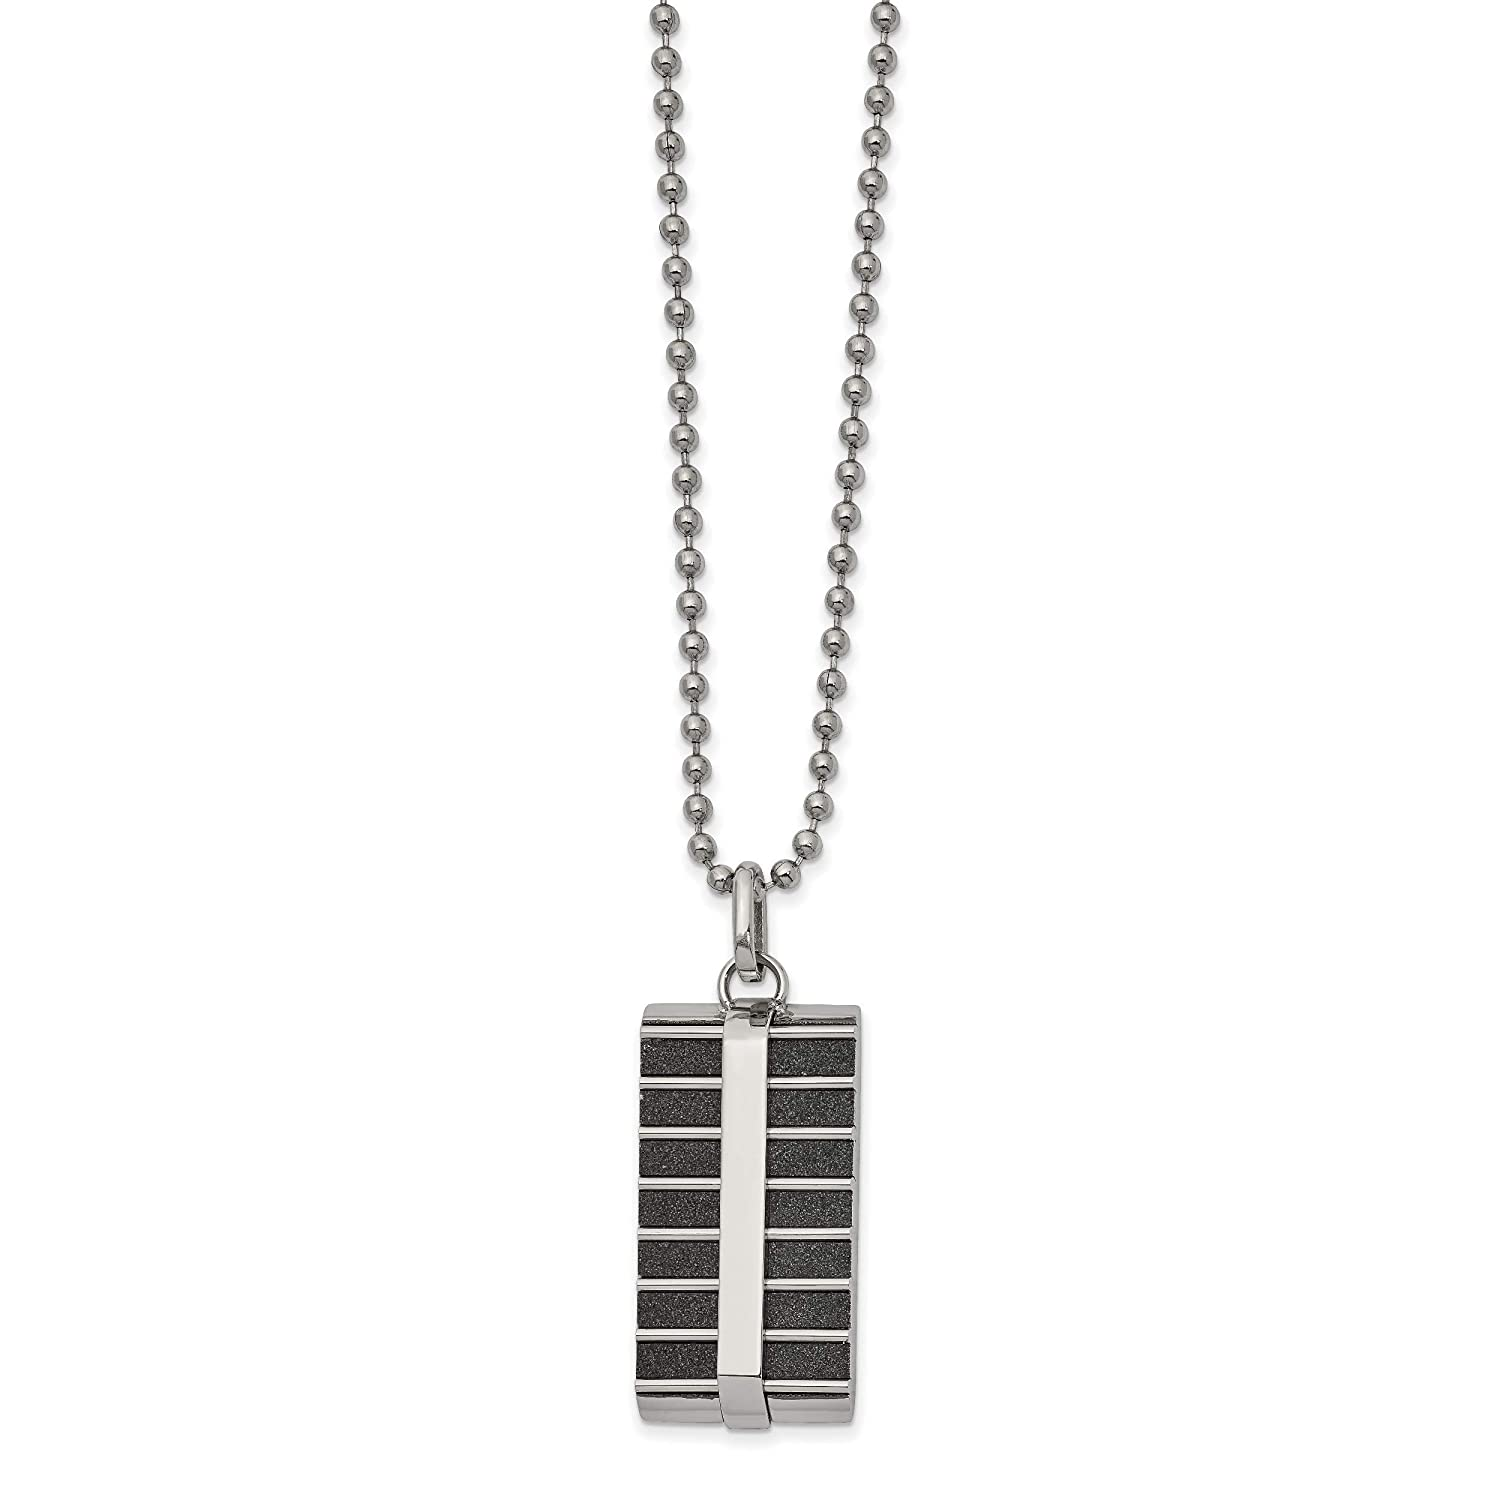 Kira Riley Stainless Steel Polished Black IP-Plated Laser Cut 22 inch Necklace